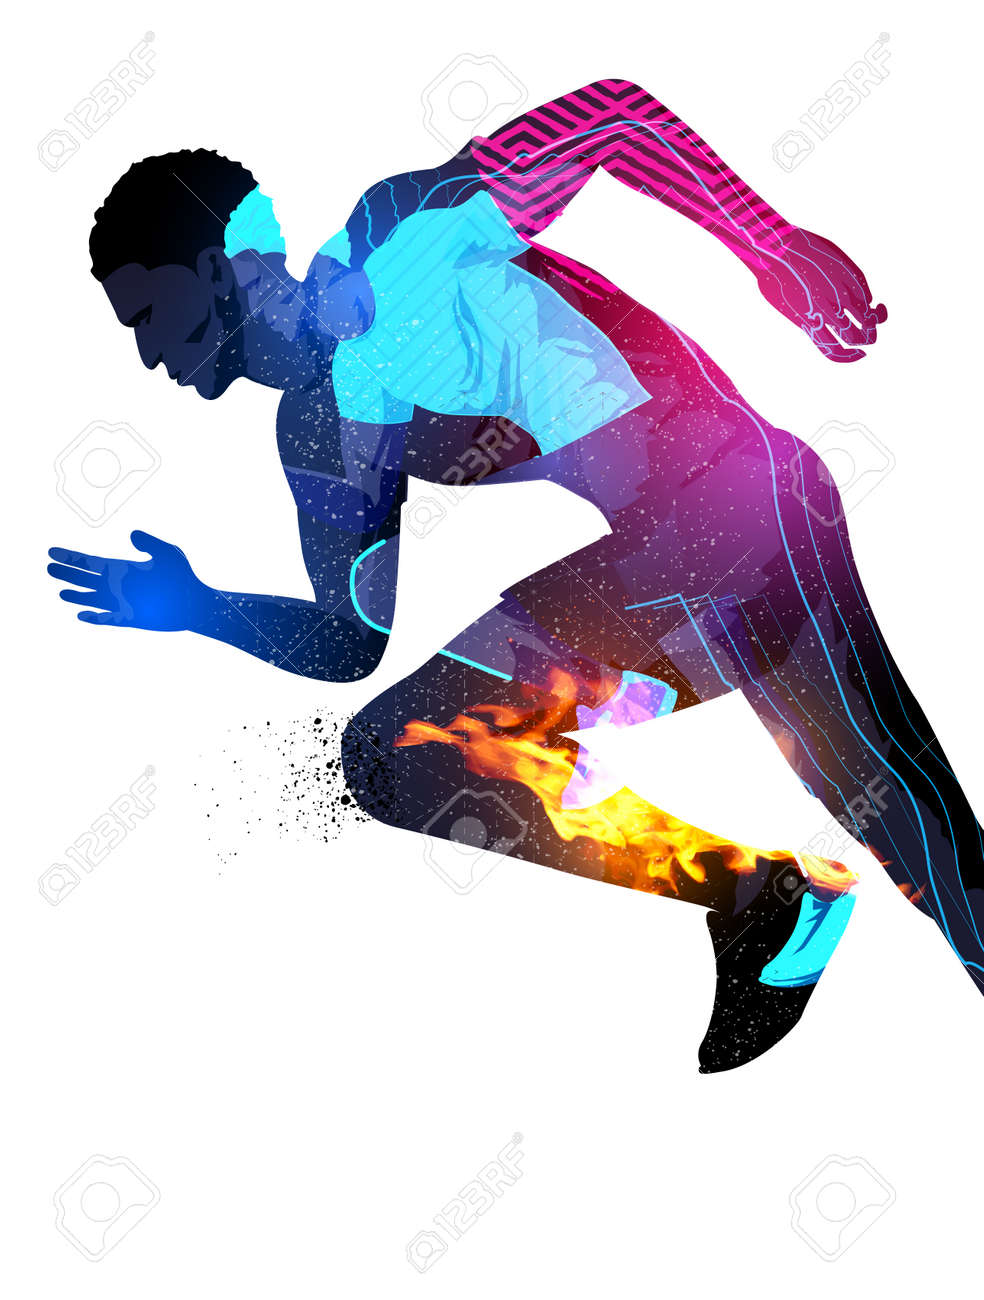 Double exposure effect illustration of a running sports man with texture effects. - 60773936